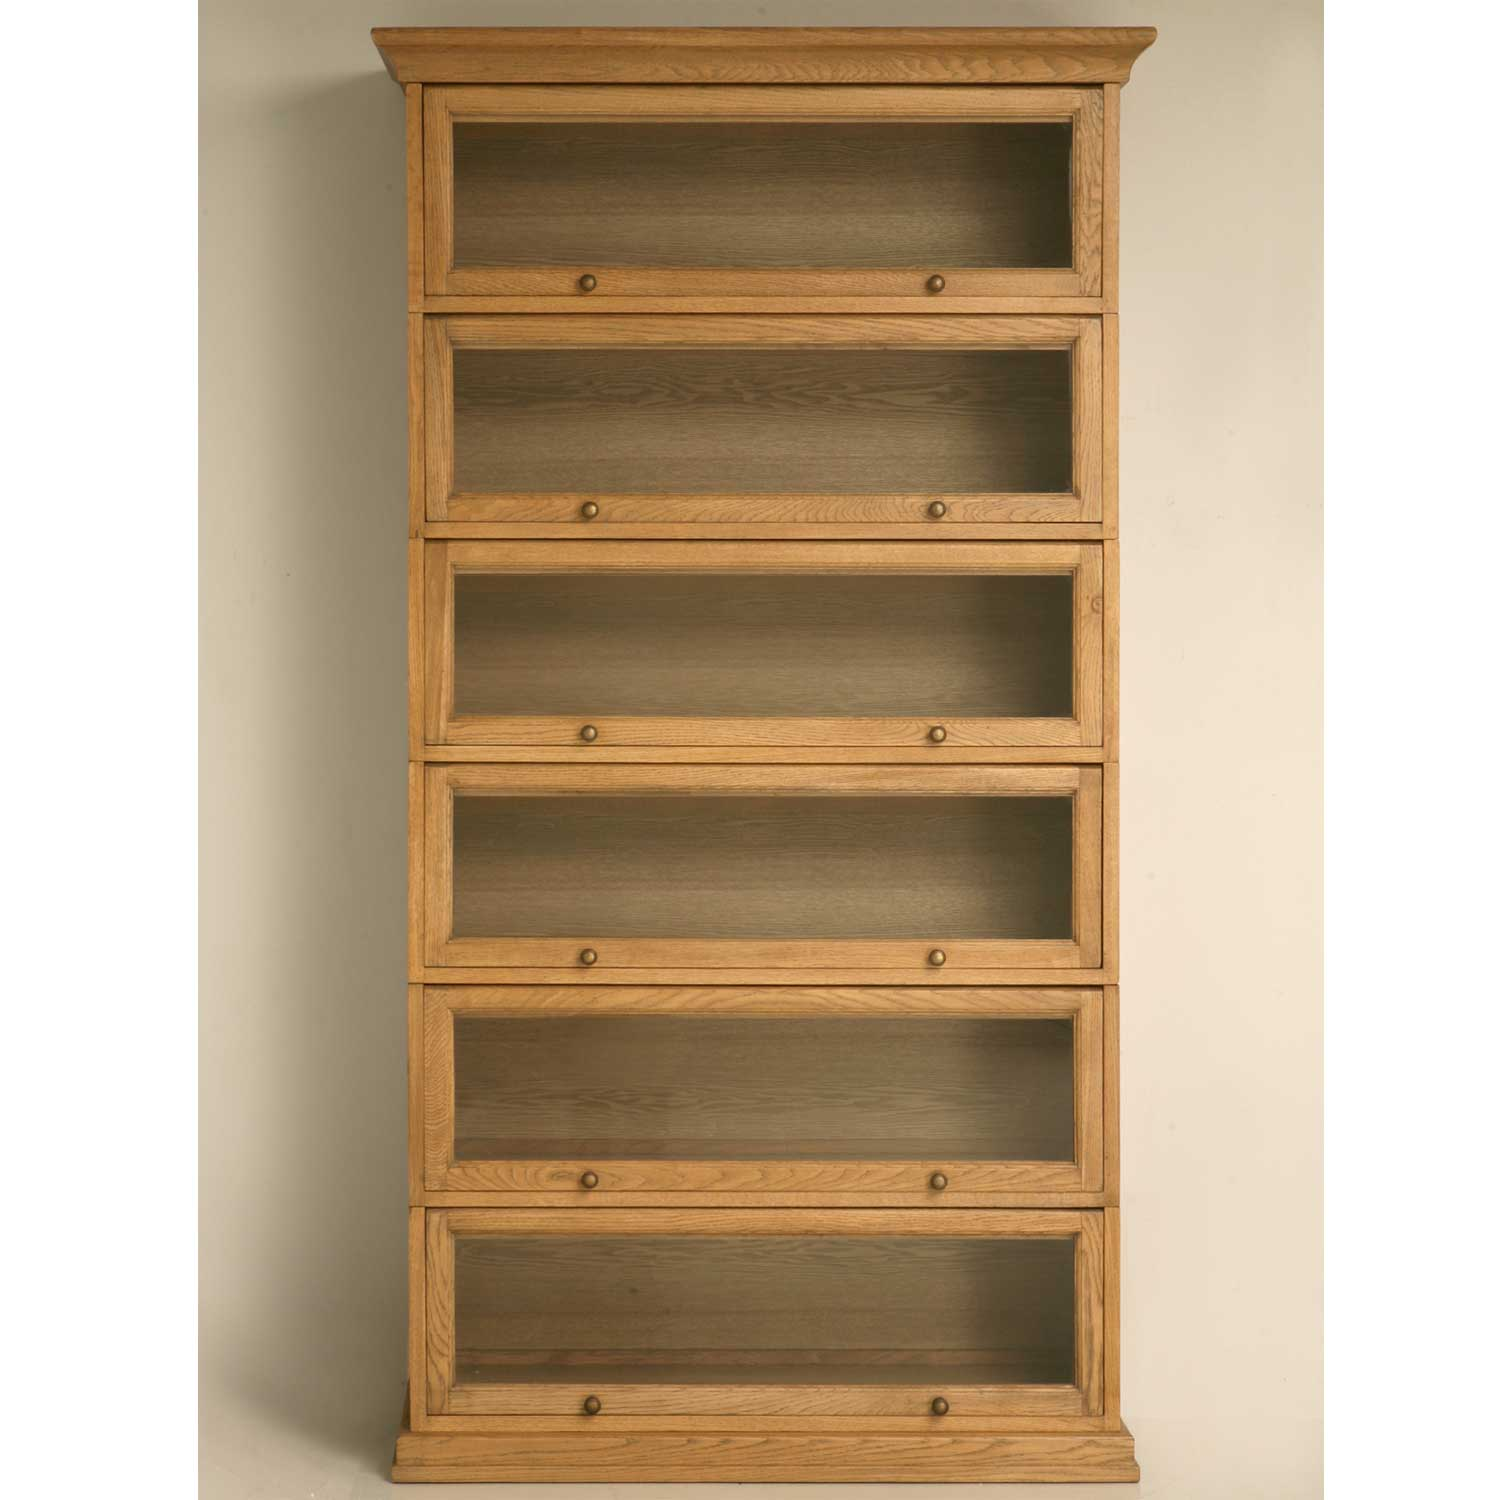 6 shelves oak barrister bookcase with lift-up door